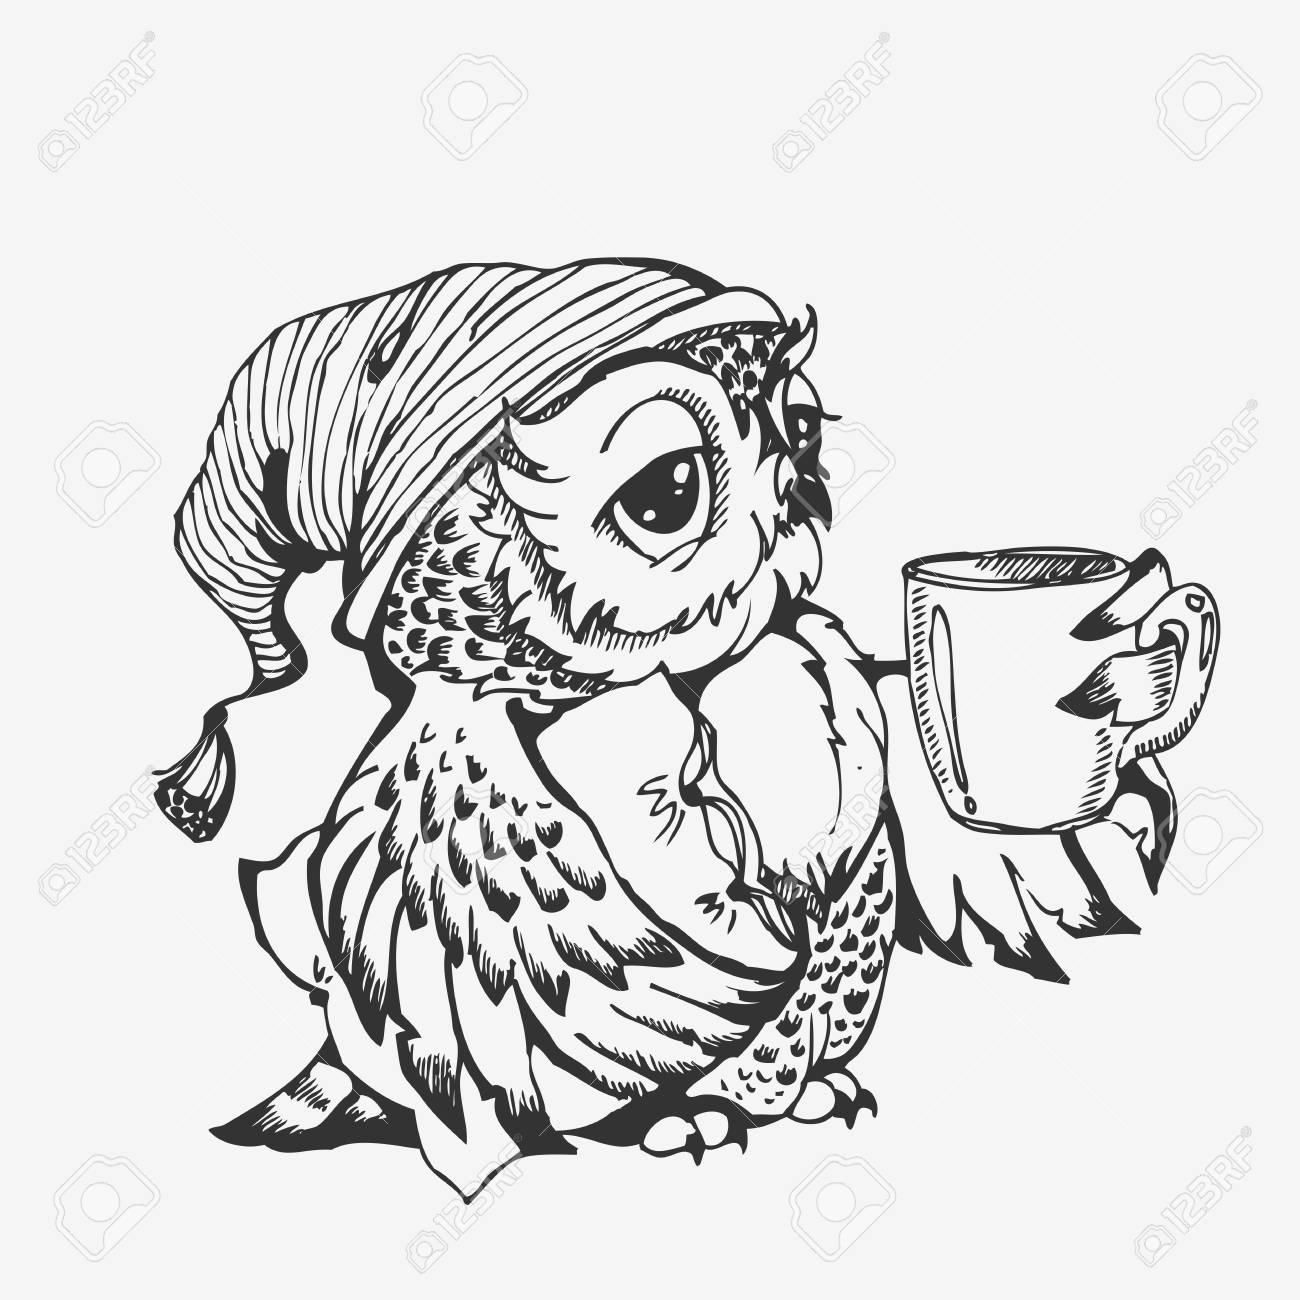 Coloring Book Greeting Card Isolated On White Cute Owl Cartoon Character Line Sketch Hand Drawn Vector Illustration For T Shirt Print